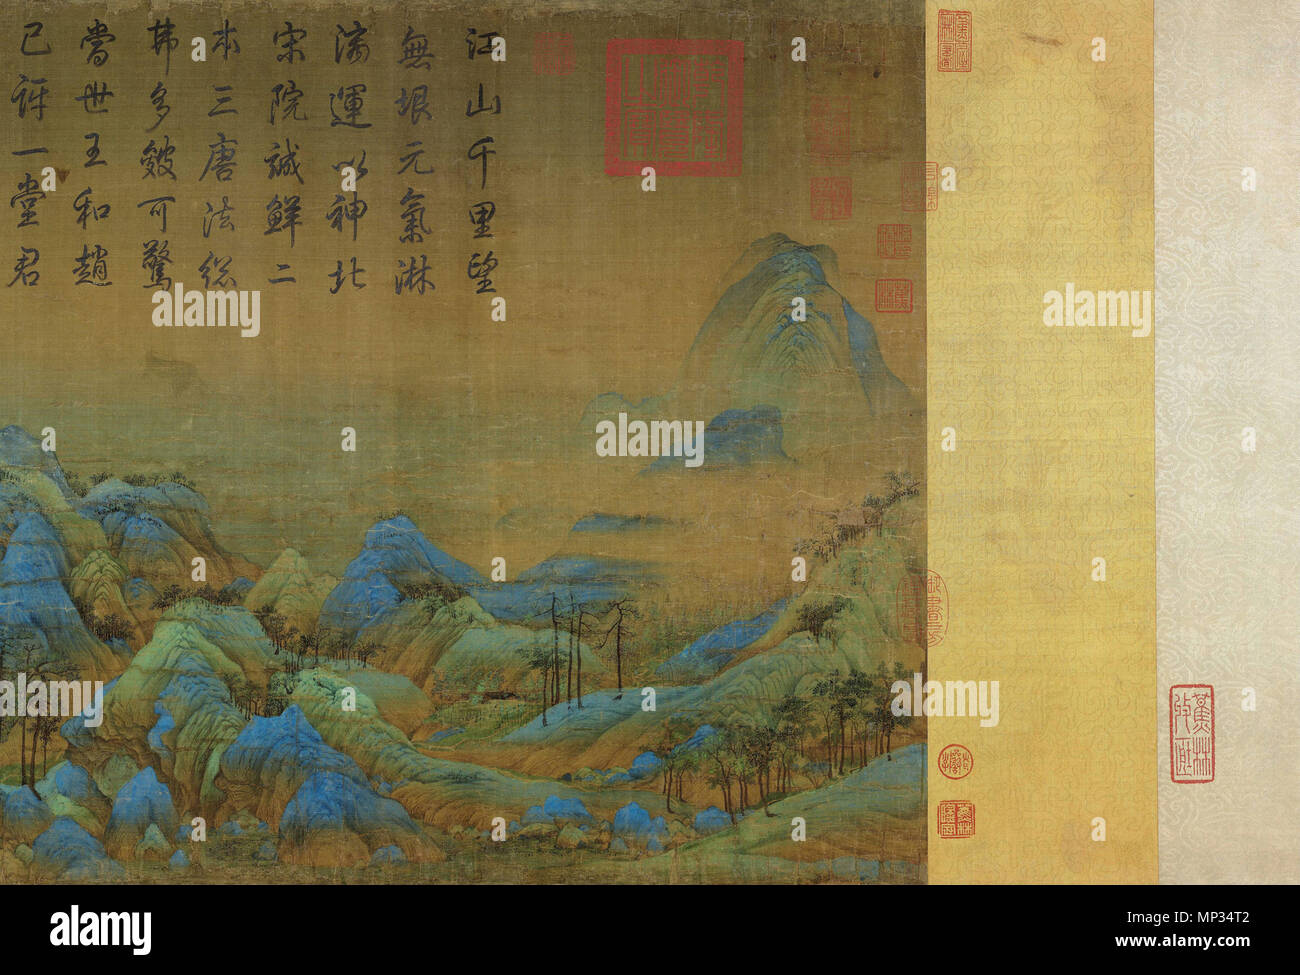 . English: Start detail from 'A Thousand Li or River and Mountains' (千里江山) hand scroll in ink and color on silk. 11.91 meters x 55.8 cm. Located in Palace Museum, Beijing. between 1096 and 1119. Wang Ximeng (王希孟) 1250 Wang Ximeng - A Thousand Li of River (Start) - Stock Image